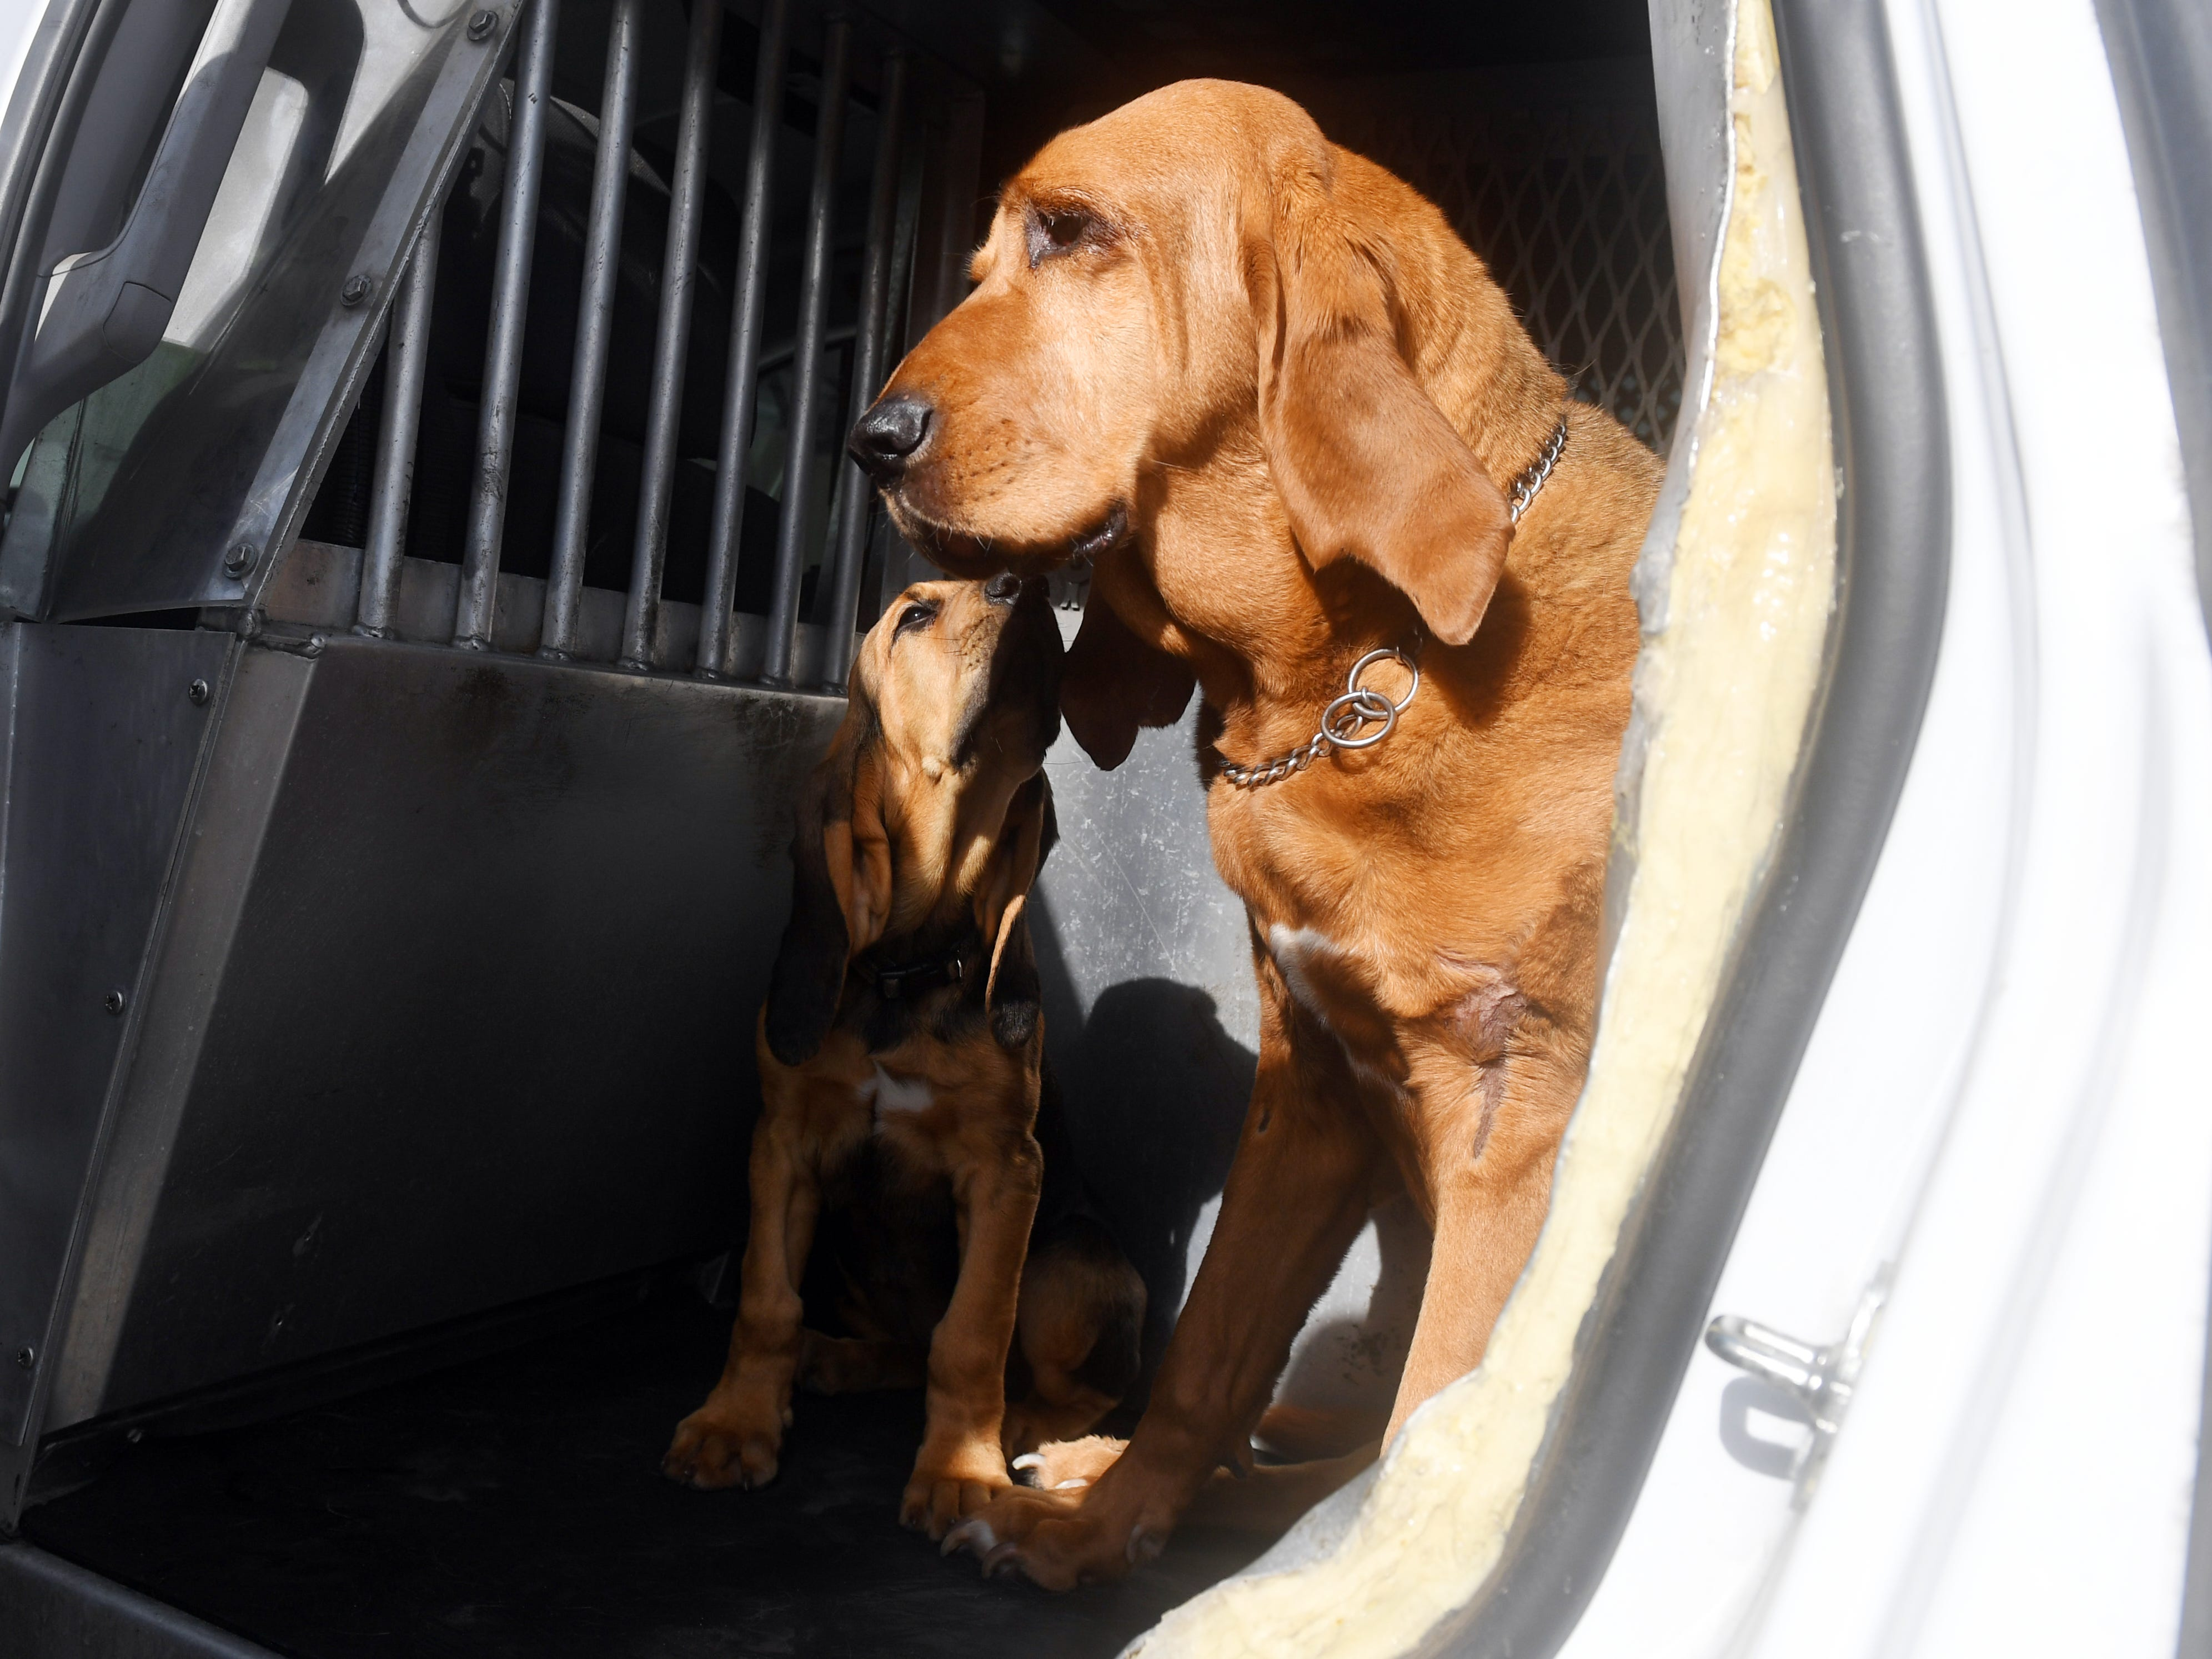 "Ten-week-old bloodhound and new Indian River County Sheriff's Office K-9 officer Willow, sits in the back of a squad car with her fellow officer Dixie on Friday, May 10, 2019. Willow, who will be trained and used as a search and rescue dog, will replace Dixie, who is 12-years-old. ""We were out on a call not to long ago and I noticed that Dixie was looking a little weak,"" said Sheriff's Deputy Brian Reimsnyder, ""and I started thinking maybe it's time for her to retire. Dixie has had a long career, longer than normal,"" Reimsnyder said. ""Now I have to get used to chasing around a toddler again."""